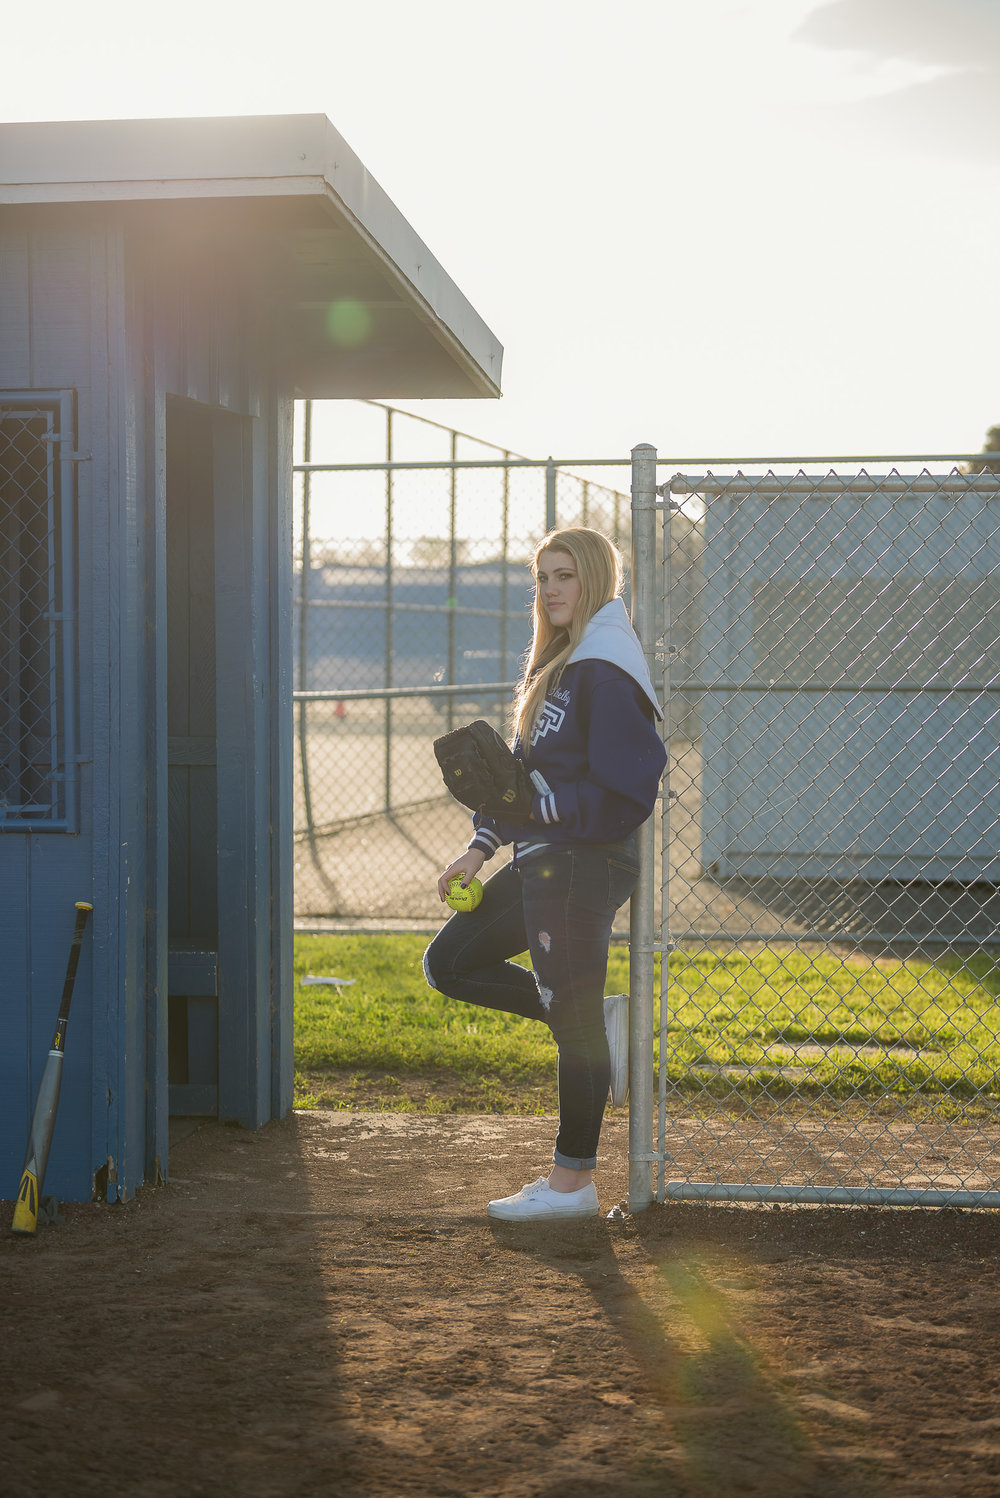 HumboldtCountySeniorPhotographer-Shelby-FortunaHigh-Softball-13.JPG